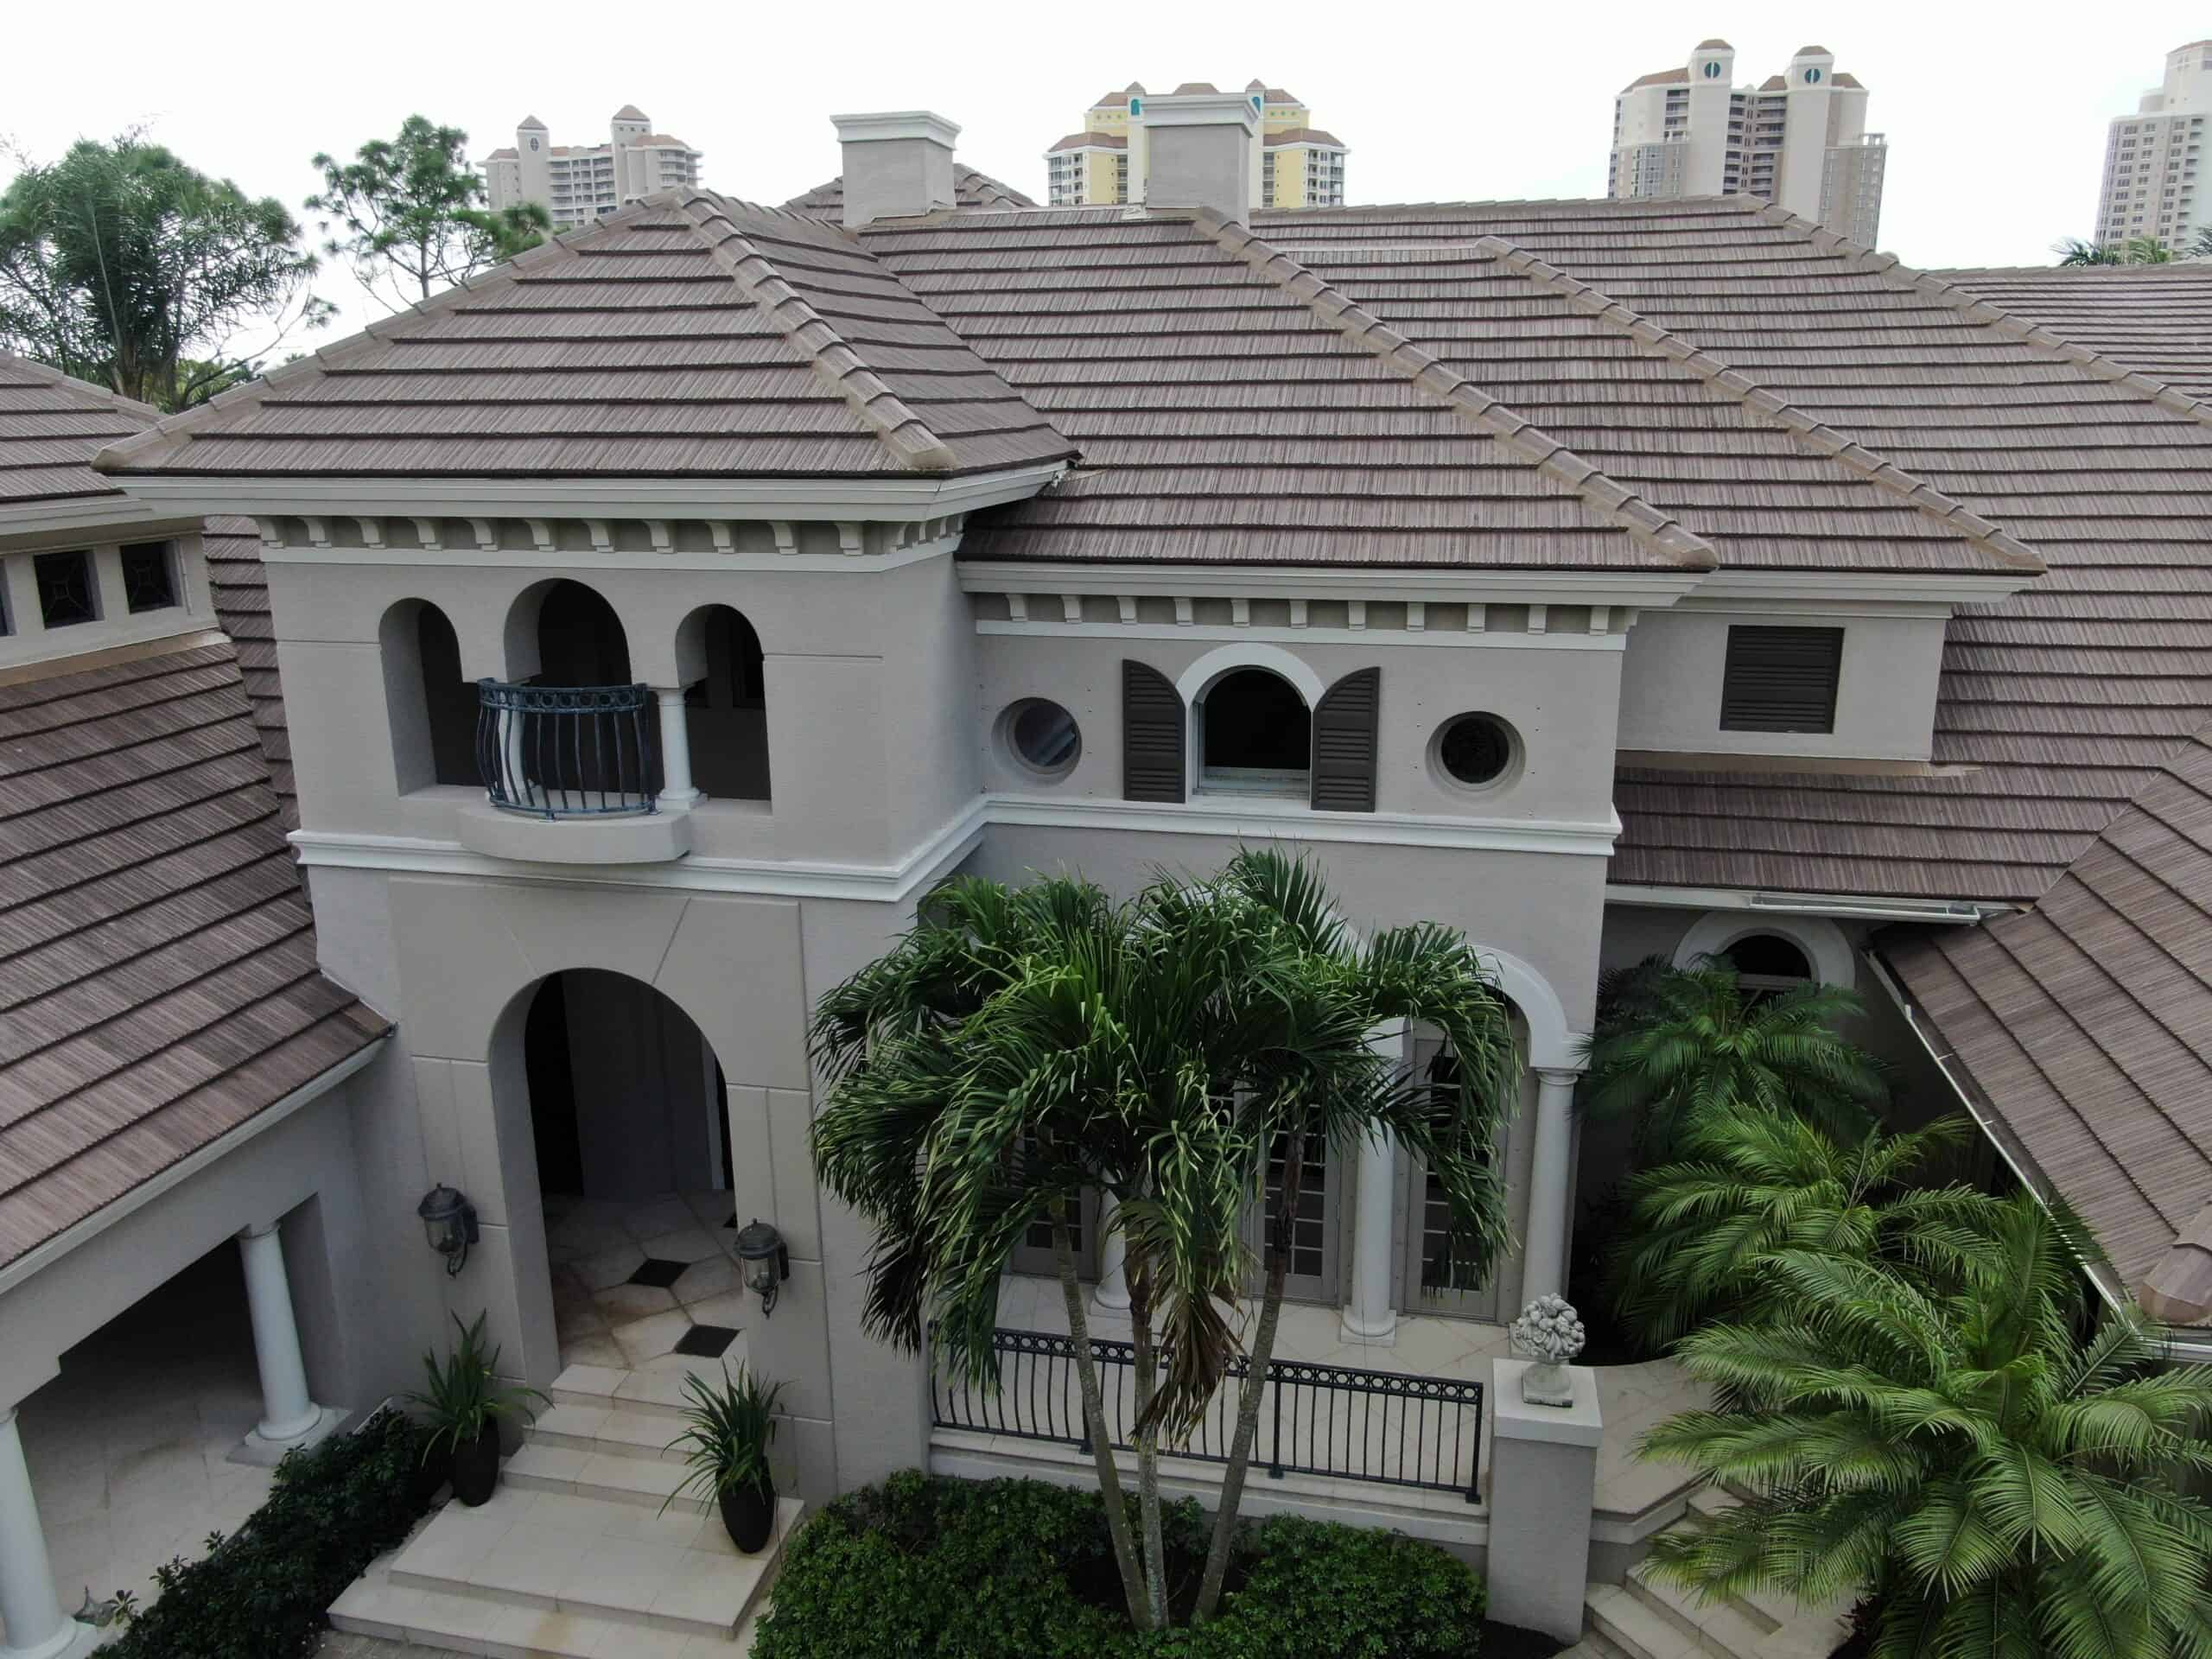 Naples Roofing Companies, Naples Tile Roofing Companies, Naples Roofing Contractors, Roofing Contractors Near Me, Who are the Best Roofing Contractors Near Me